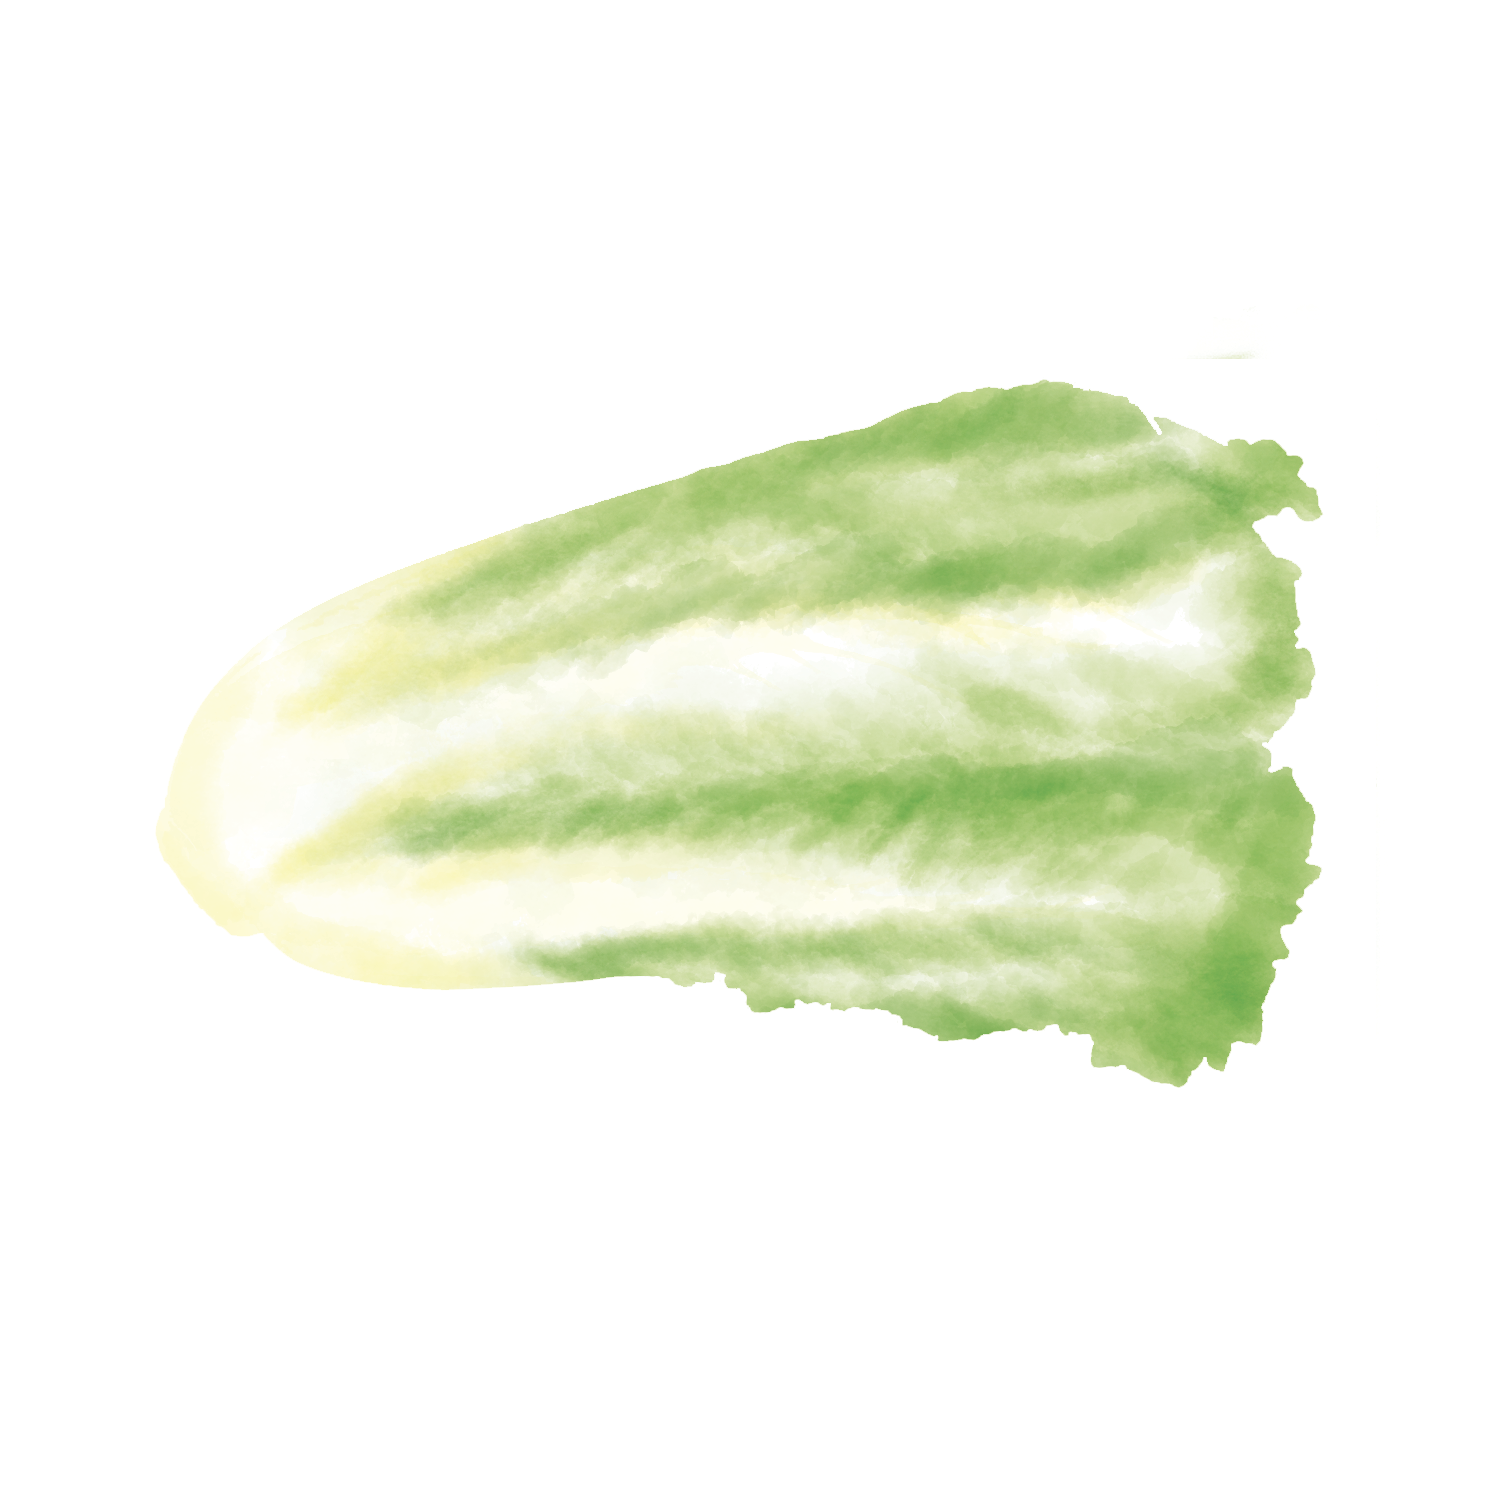 PS_Cabbage.png